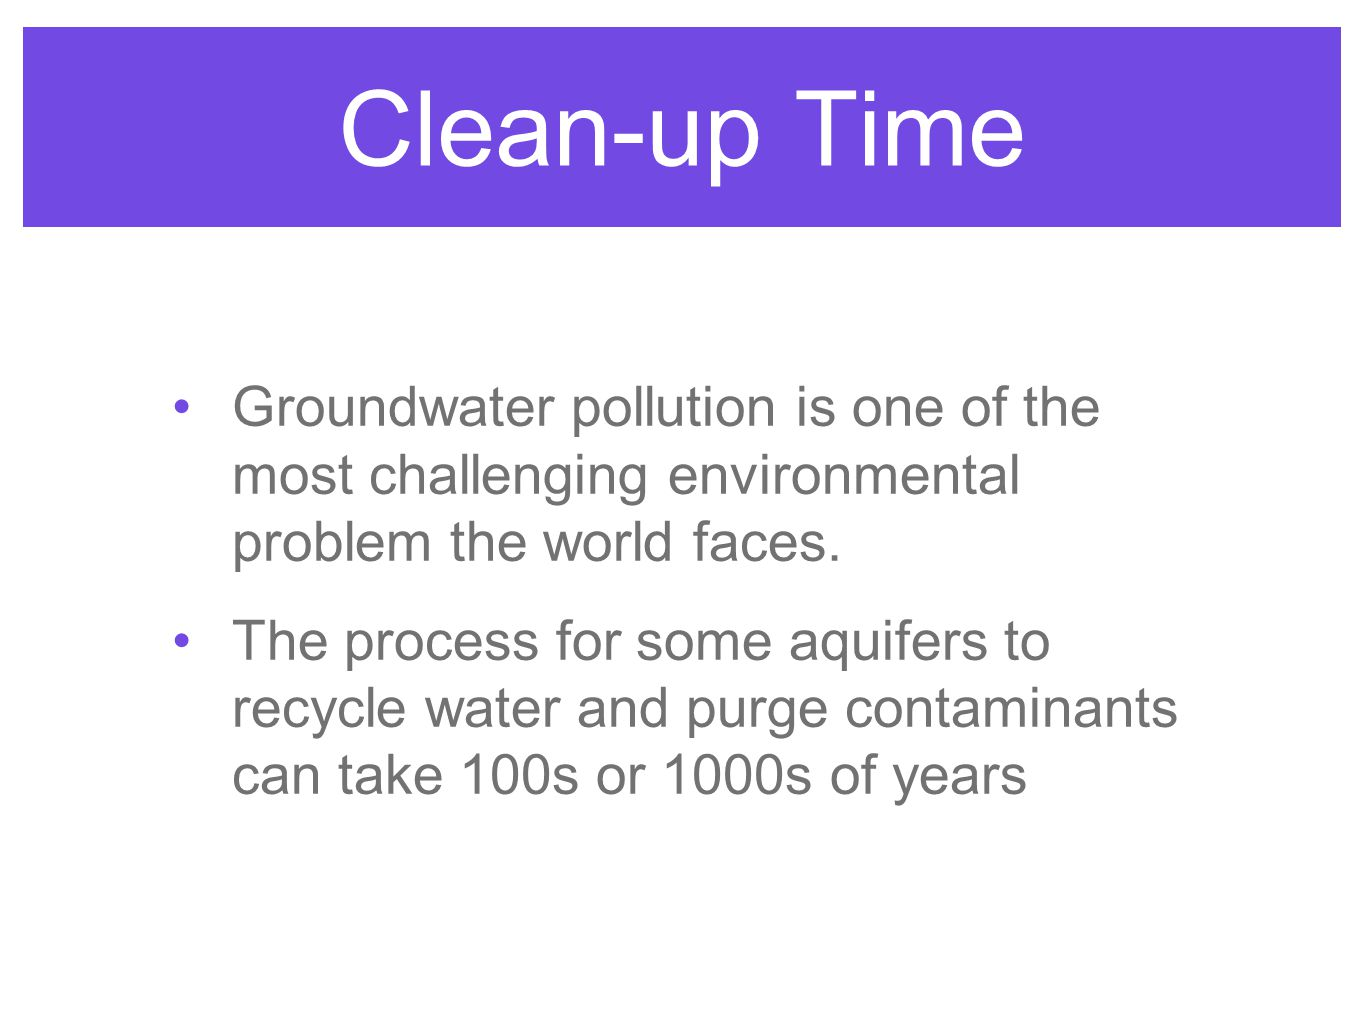 Clean-up Time Groundwater pollution is one of the most challenging environmental problem the world faces.